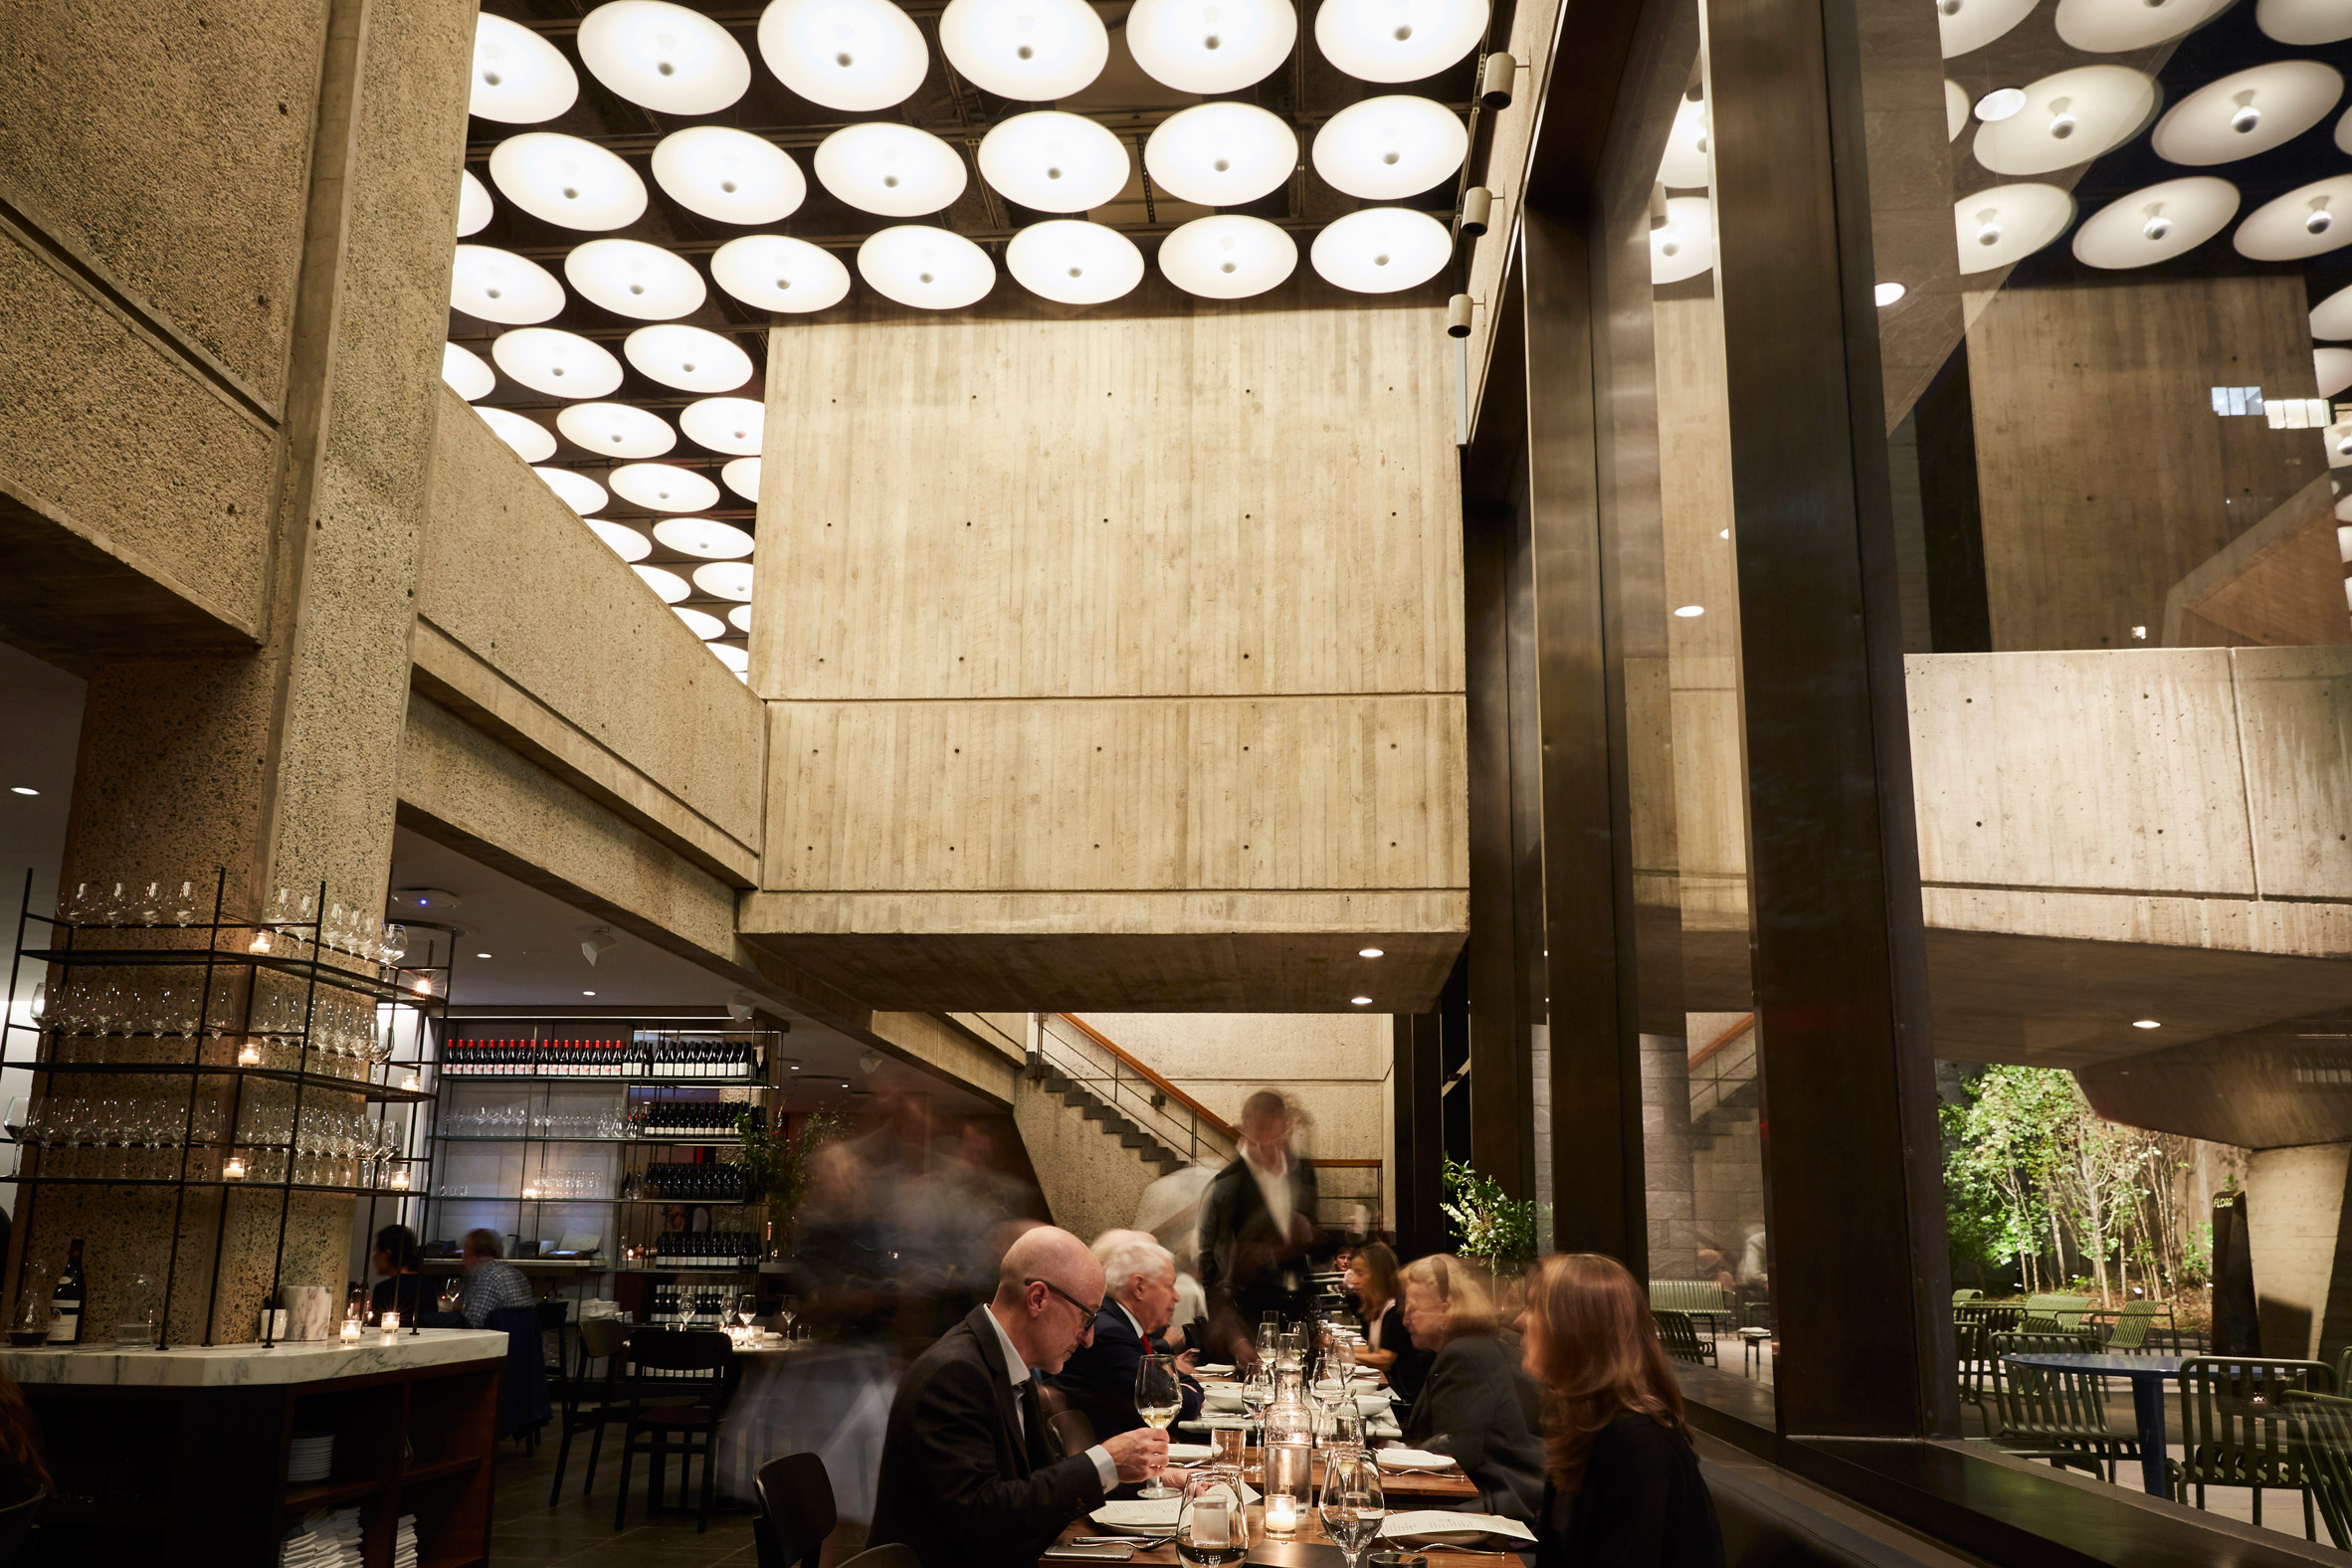 Restaurant and coffee bar open inside brutalist met breuer